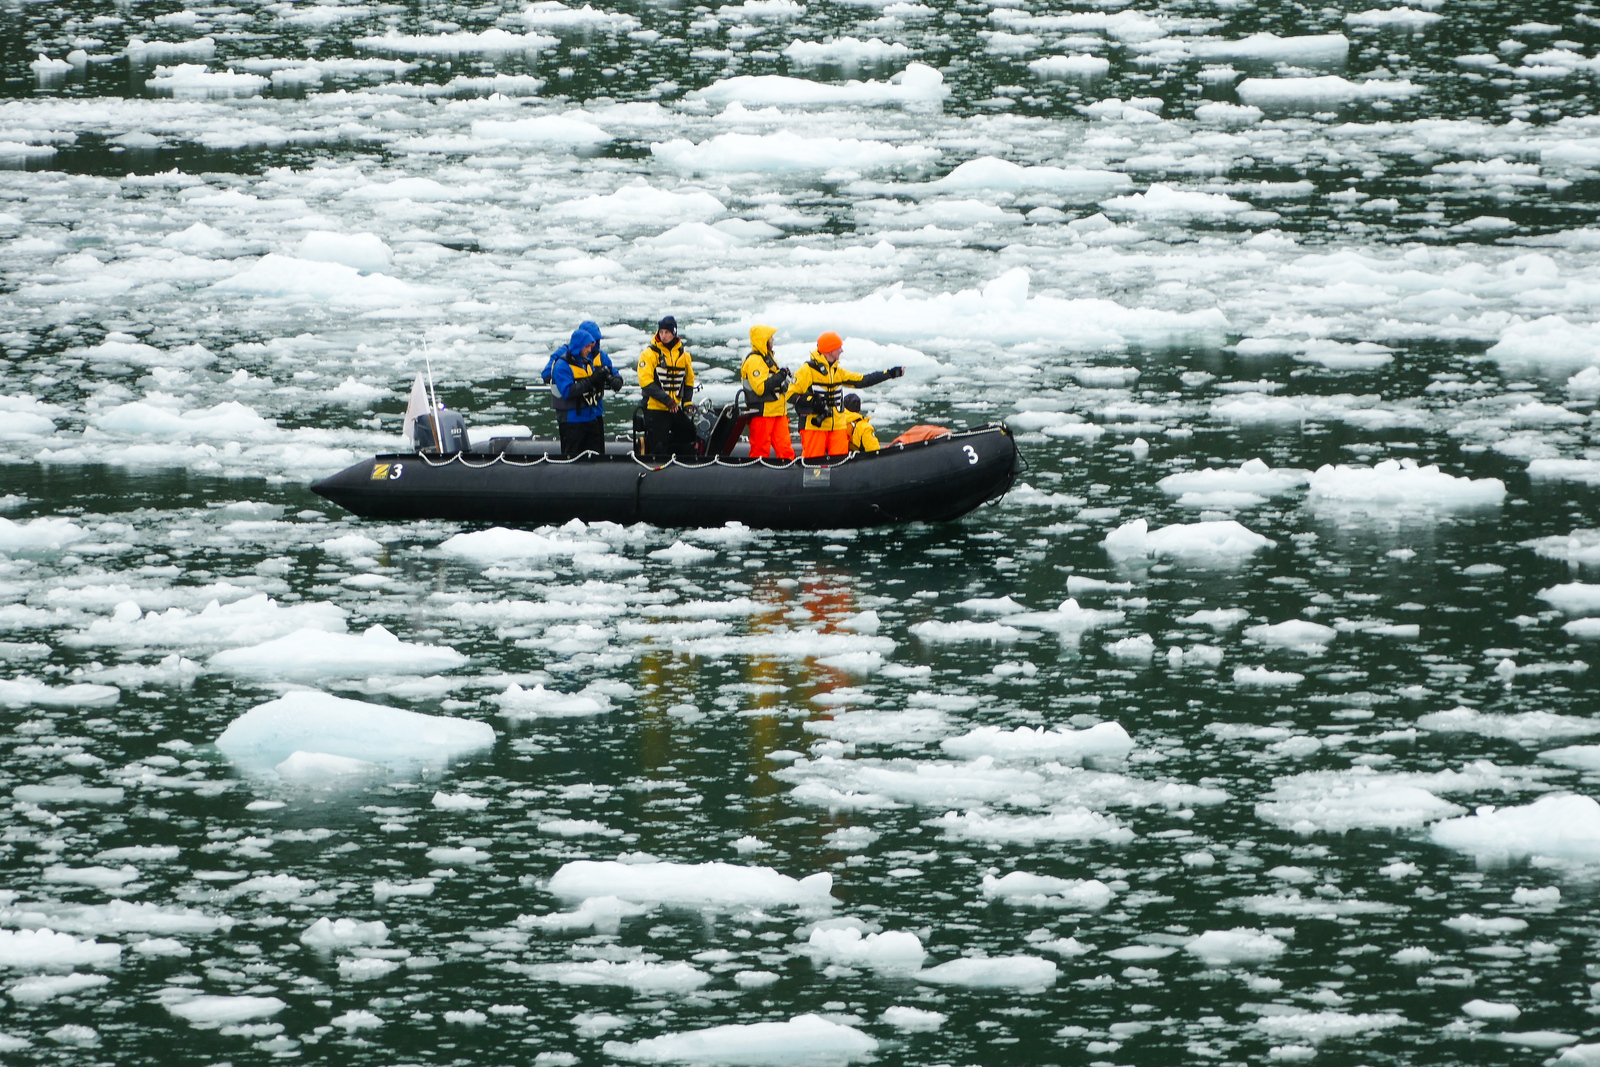 A zodiac explores the waters of Asia Fjord near El Brujo glacier in Chile. What a travel experience!